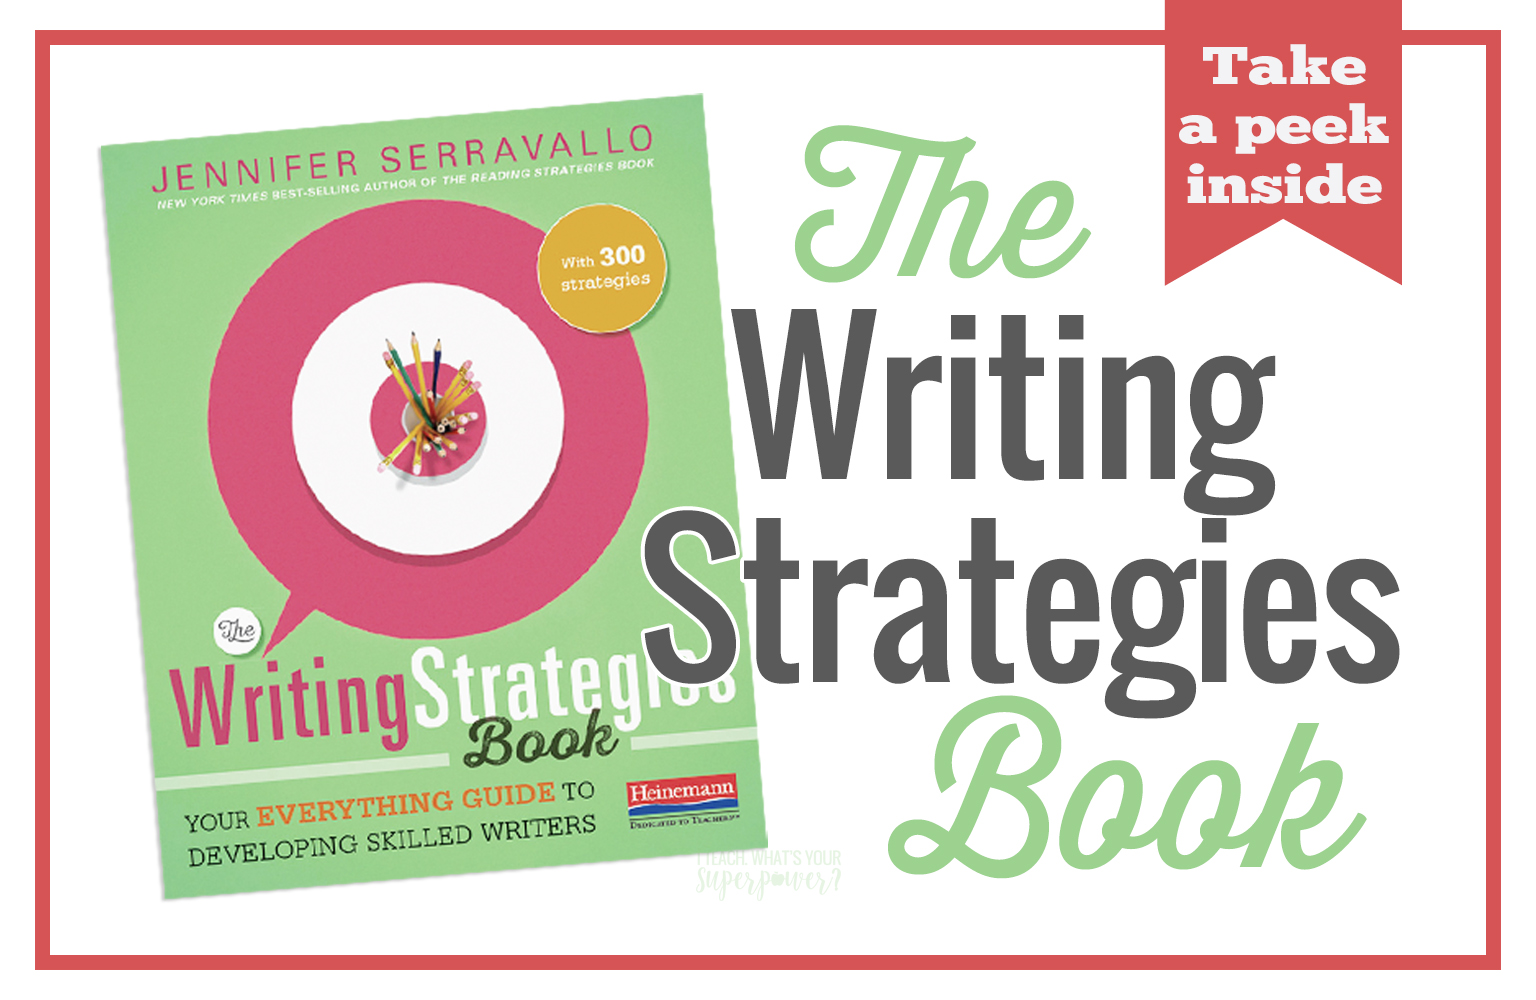 The Writing Strategies Book is the one book you need to meet your learners wherever they are.  With over 300 strategies organized by writing goals, you'll find what your K-8 students need in this book.